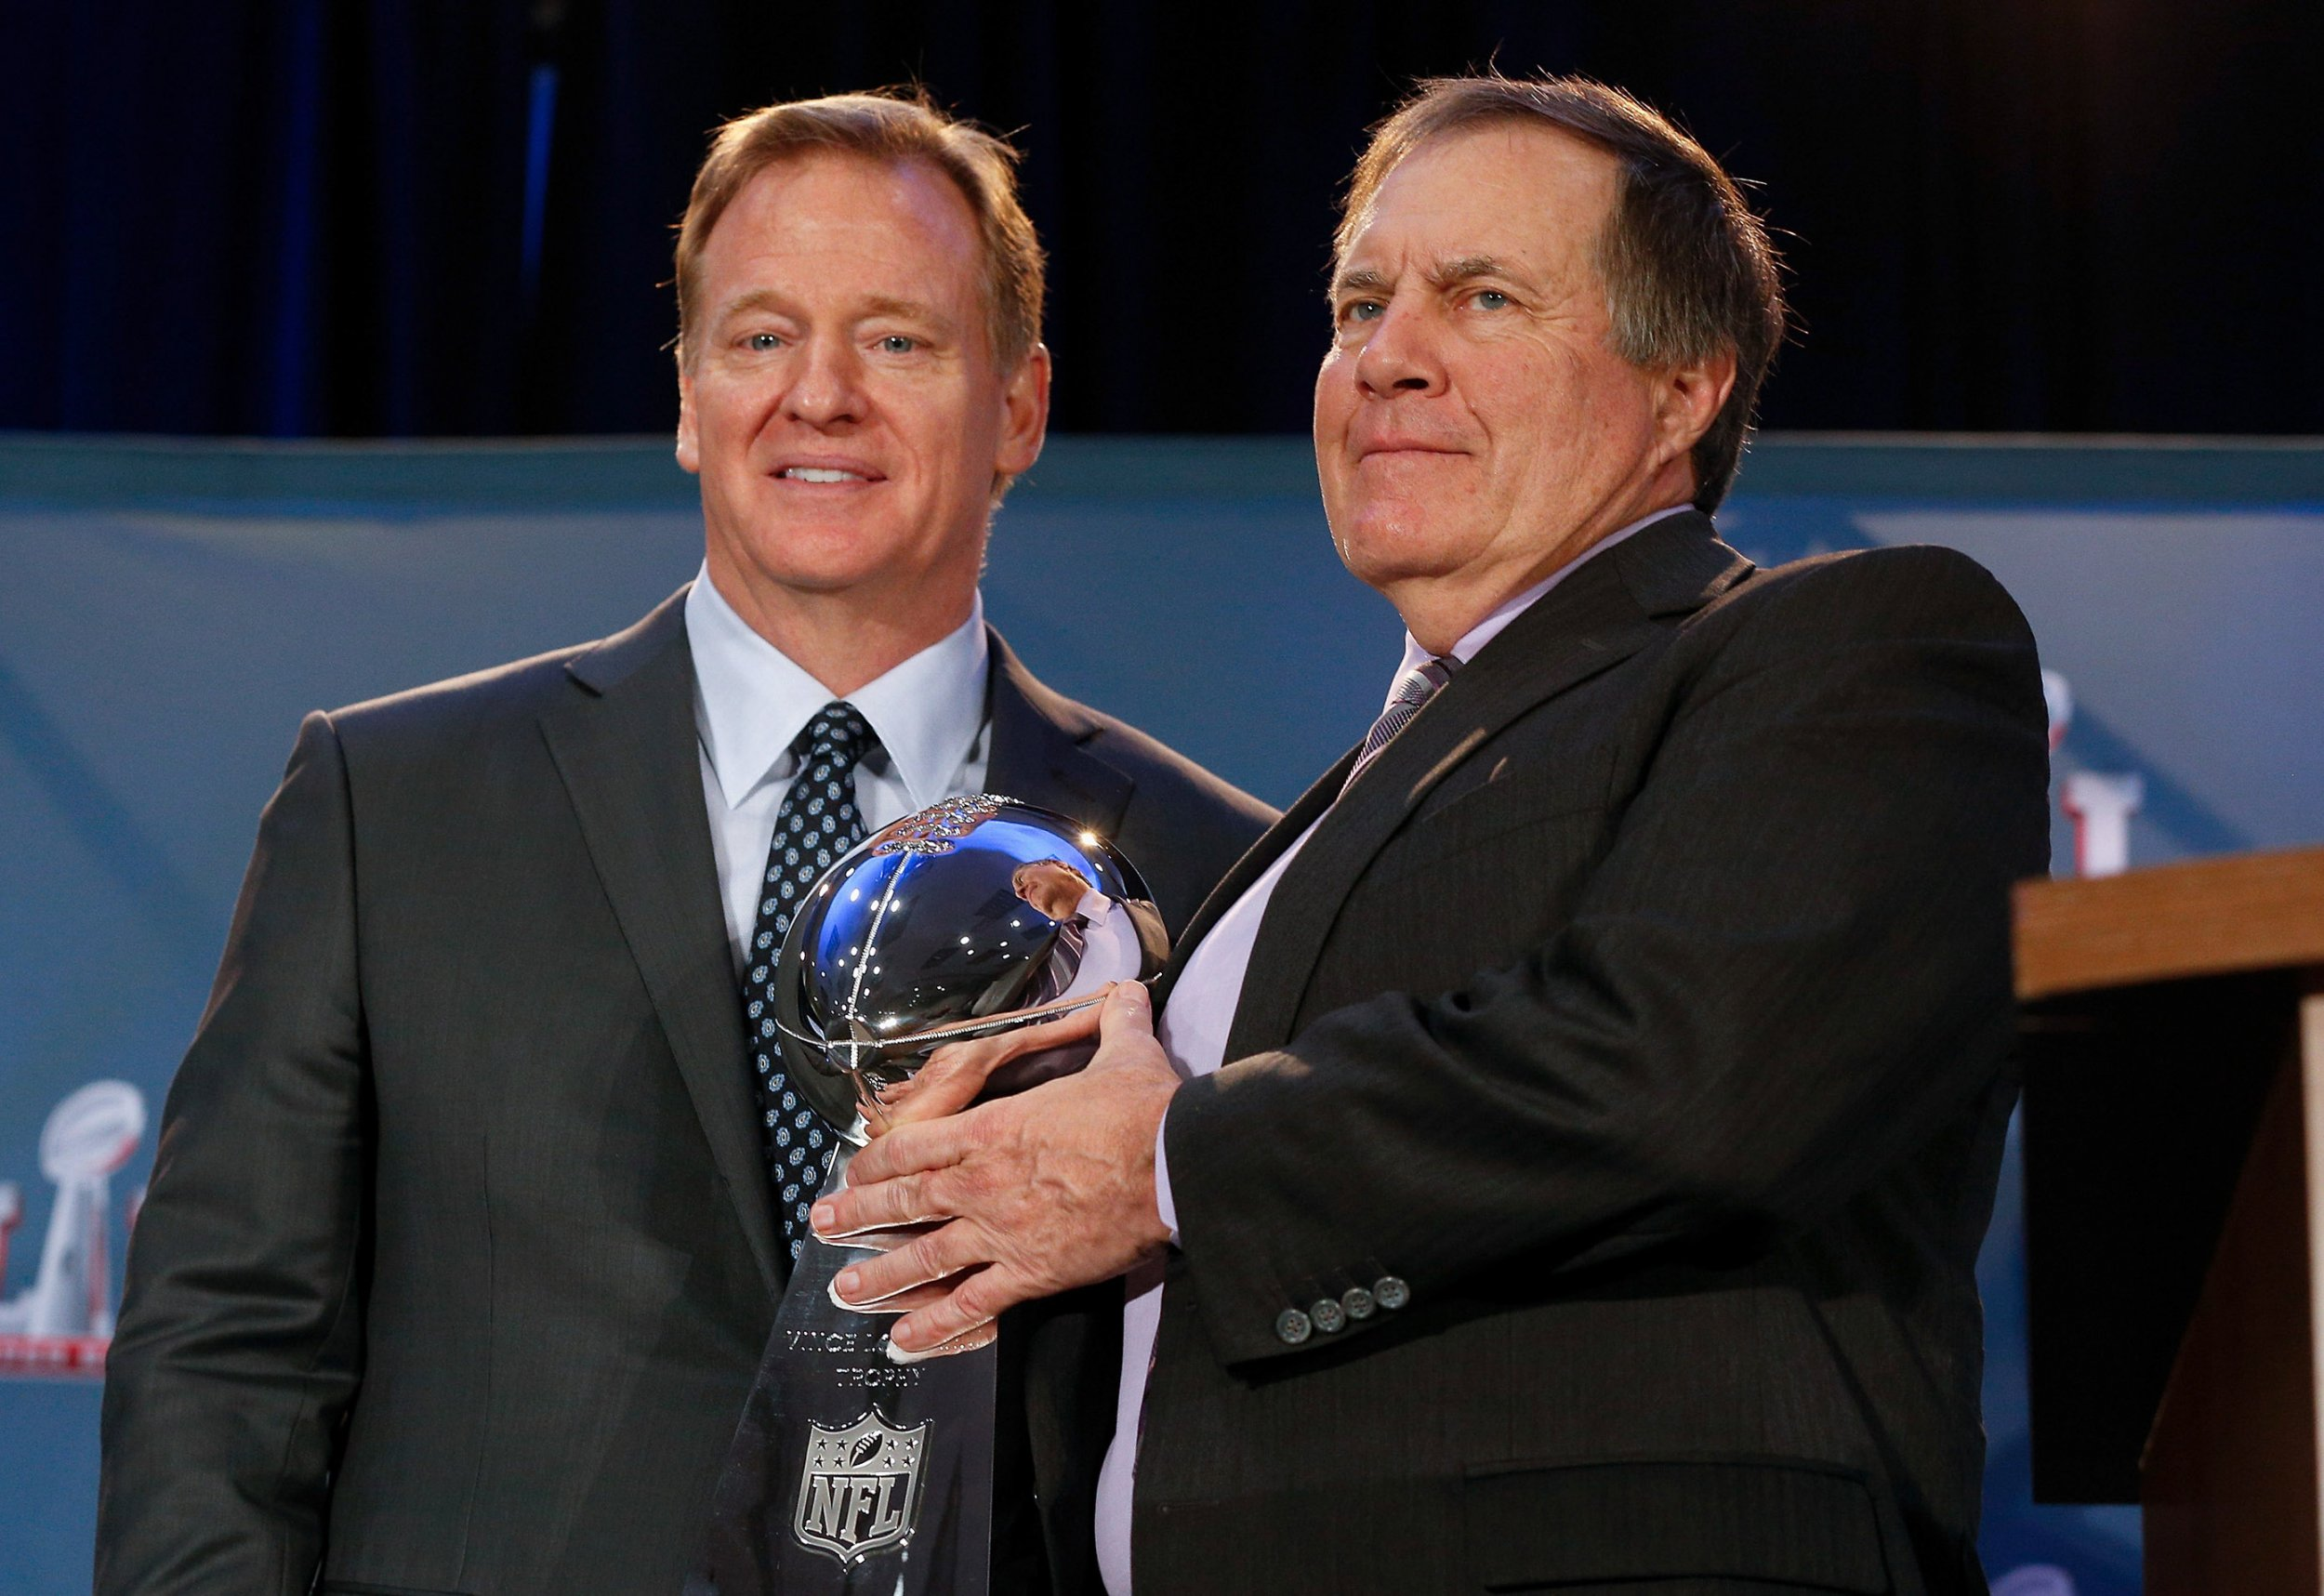 NFL Commissioner Roger Goodell, left, with New England Patriots head coach Bill Belichick.